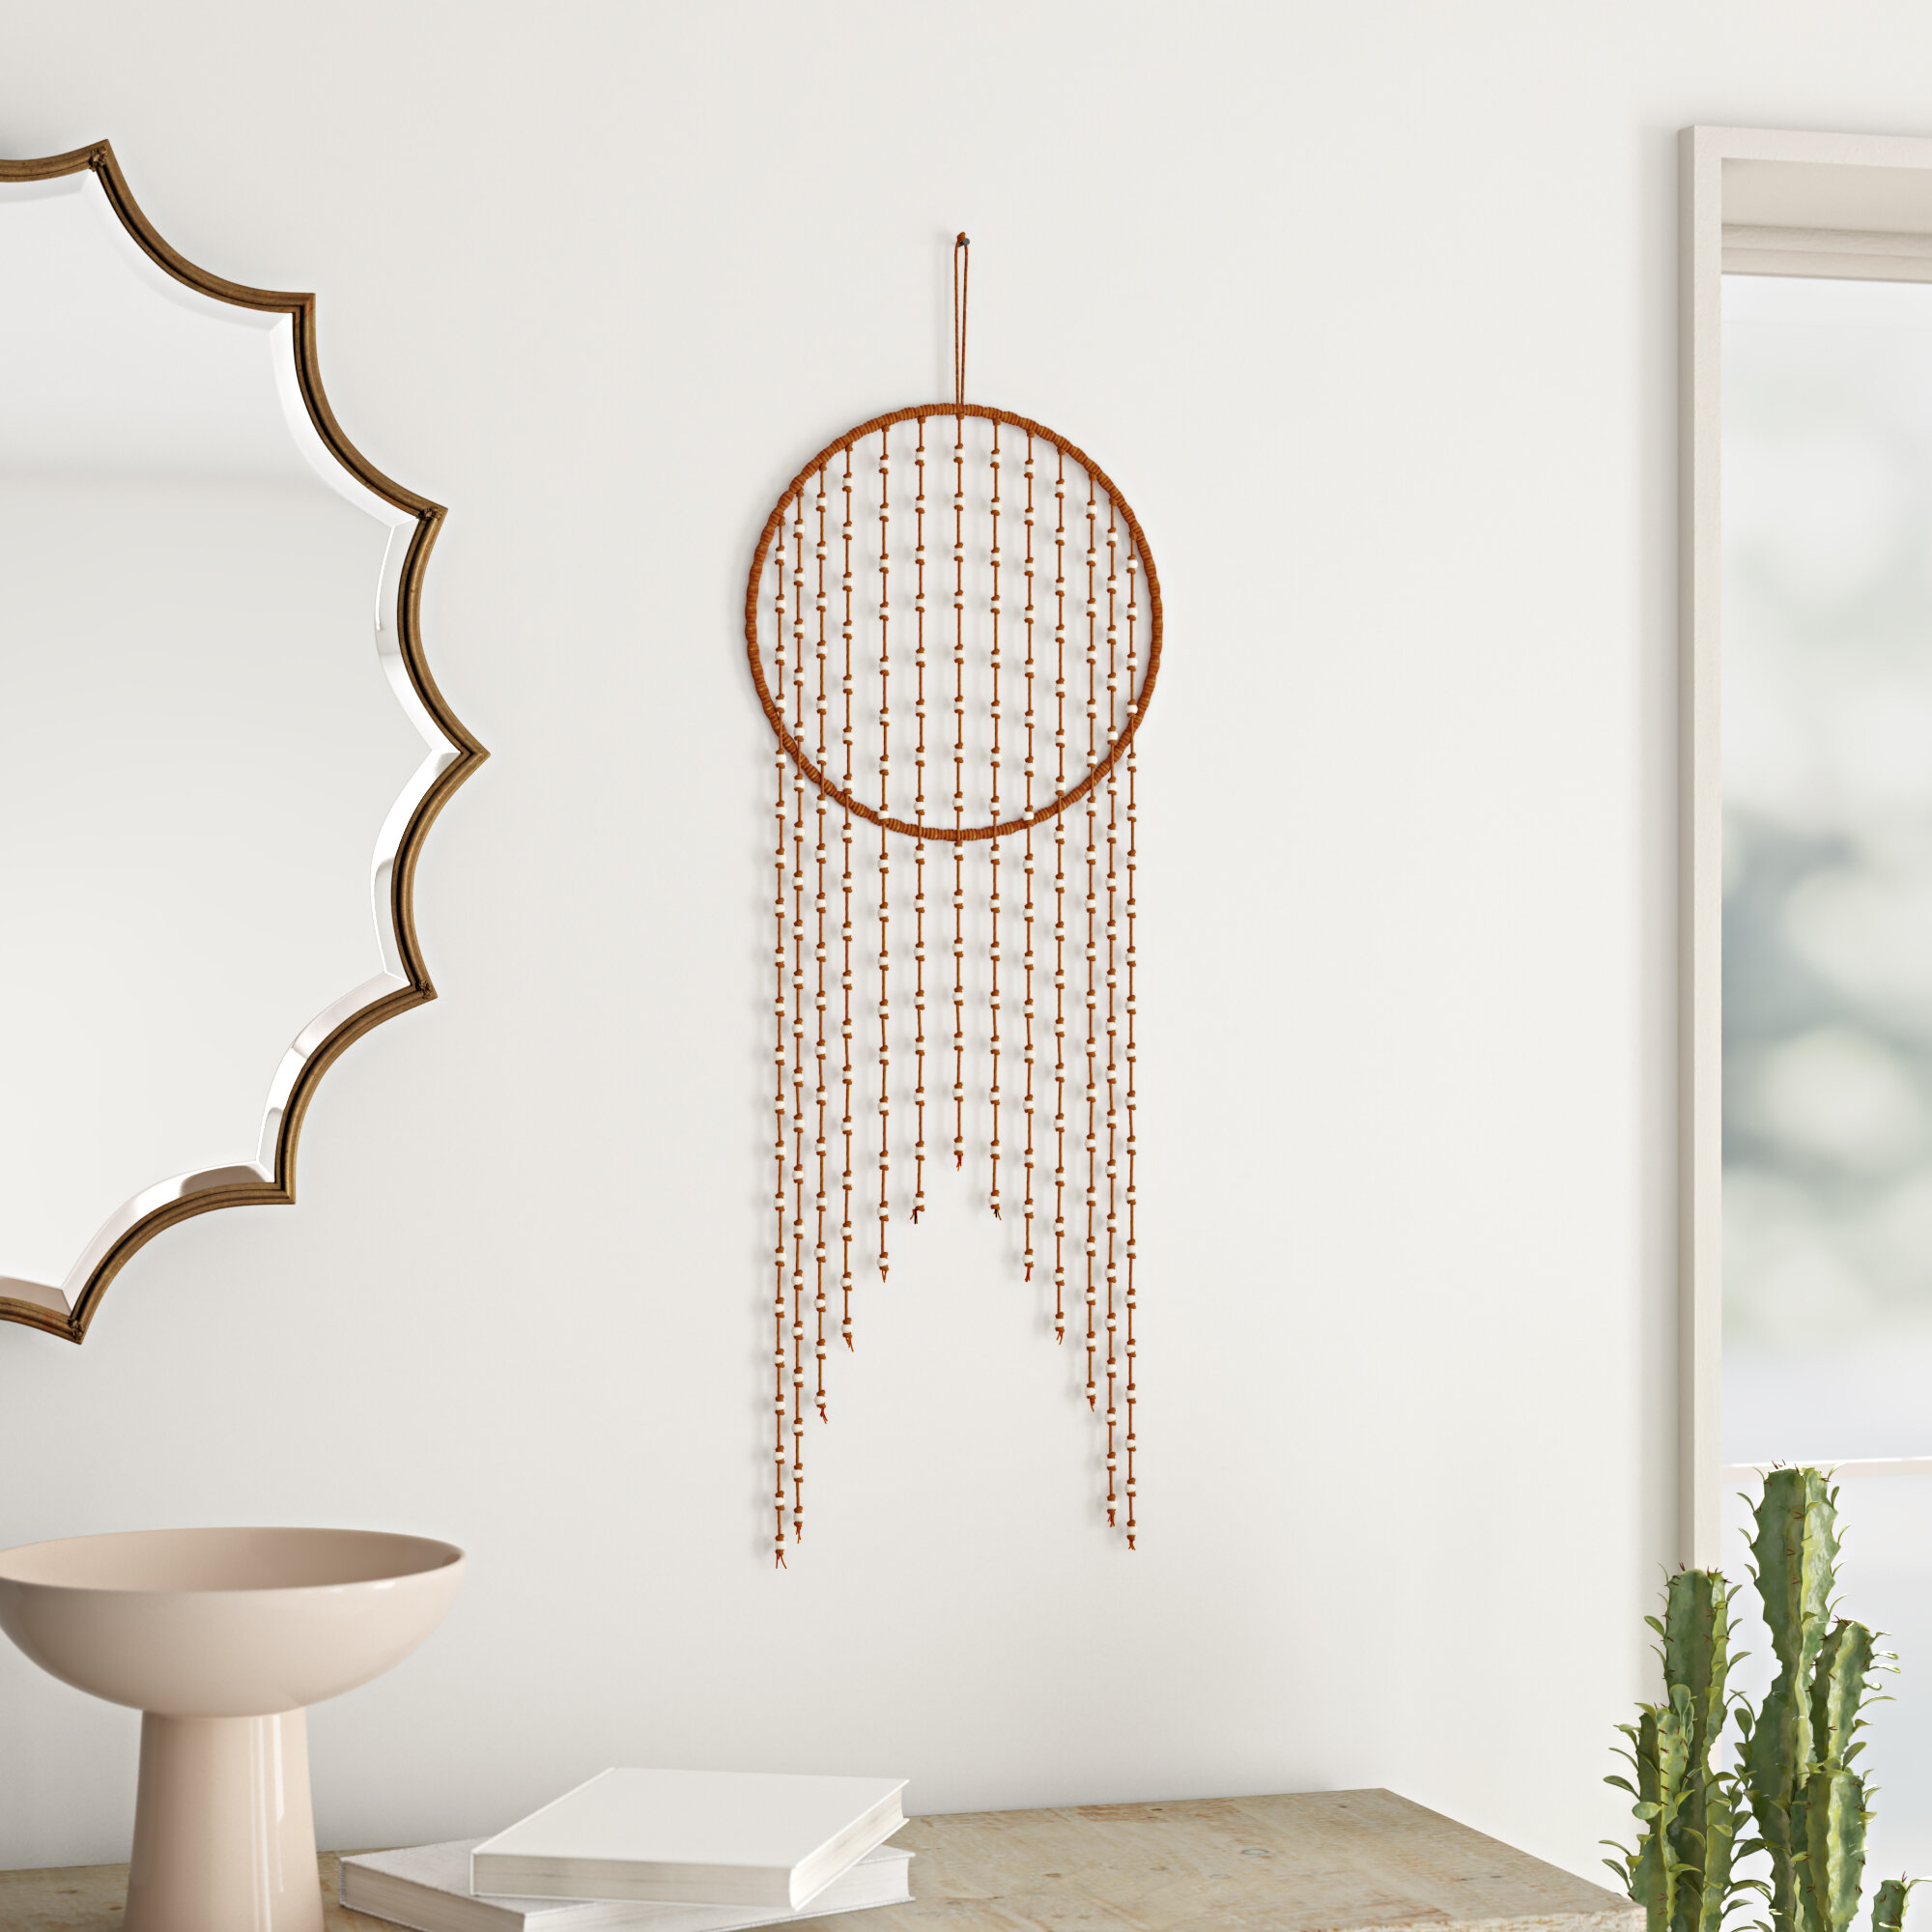 Wall Hanging Macrame | Free Shipping Over $35 | Wayfair Within 2018 Blended Fabric Teresina Wool And Viscose Wall Hangings With Hanging Accessories Included (View 15 of 20)